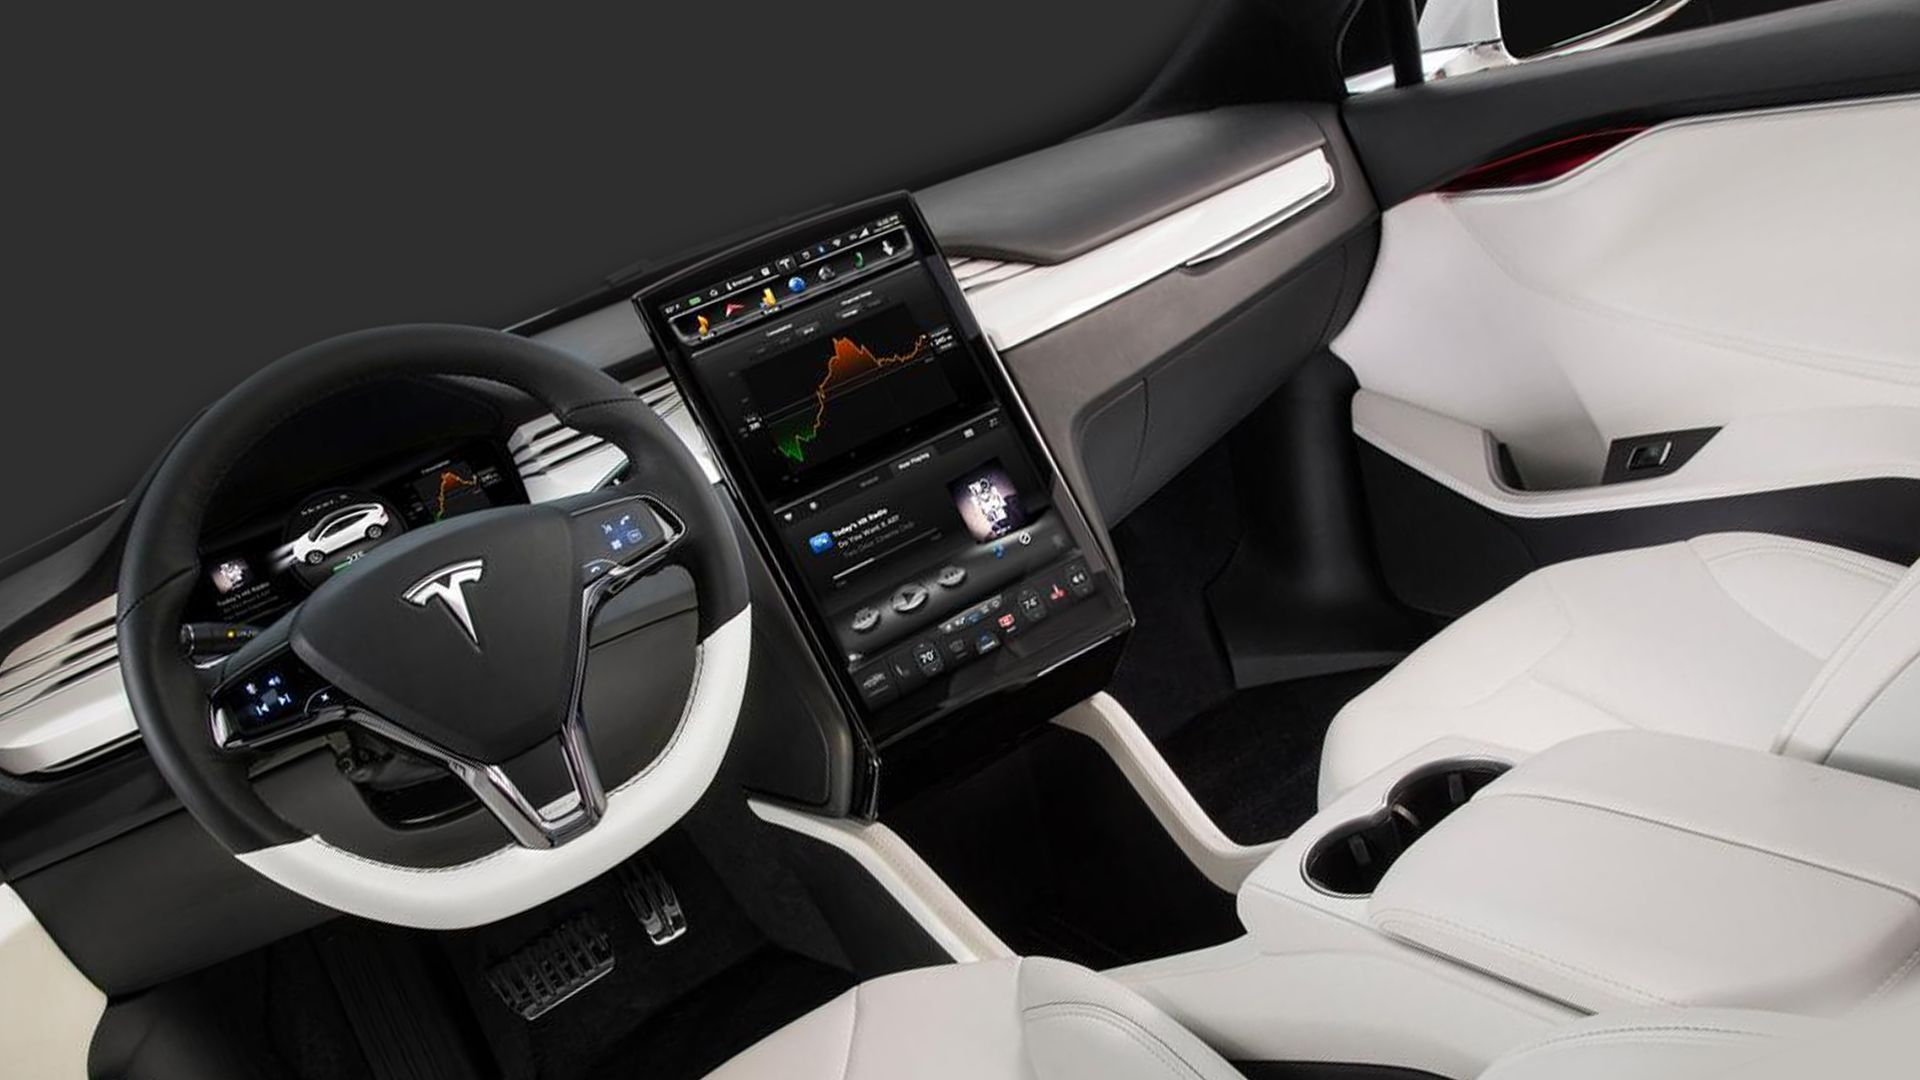 New 2018 Tesla Model X Interior Design